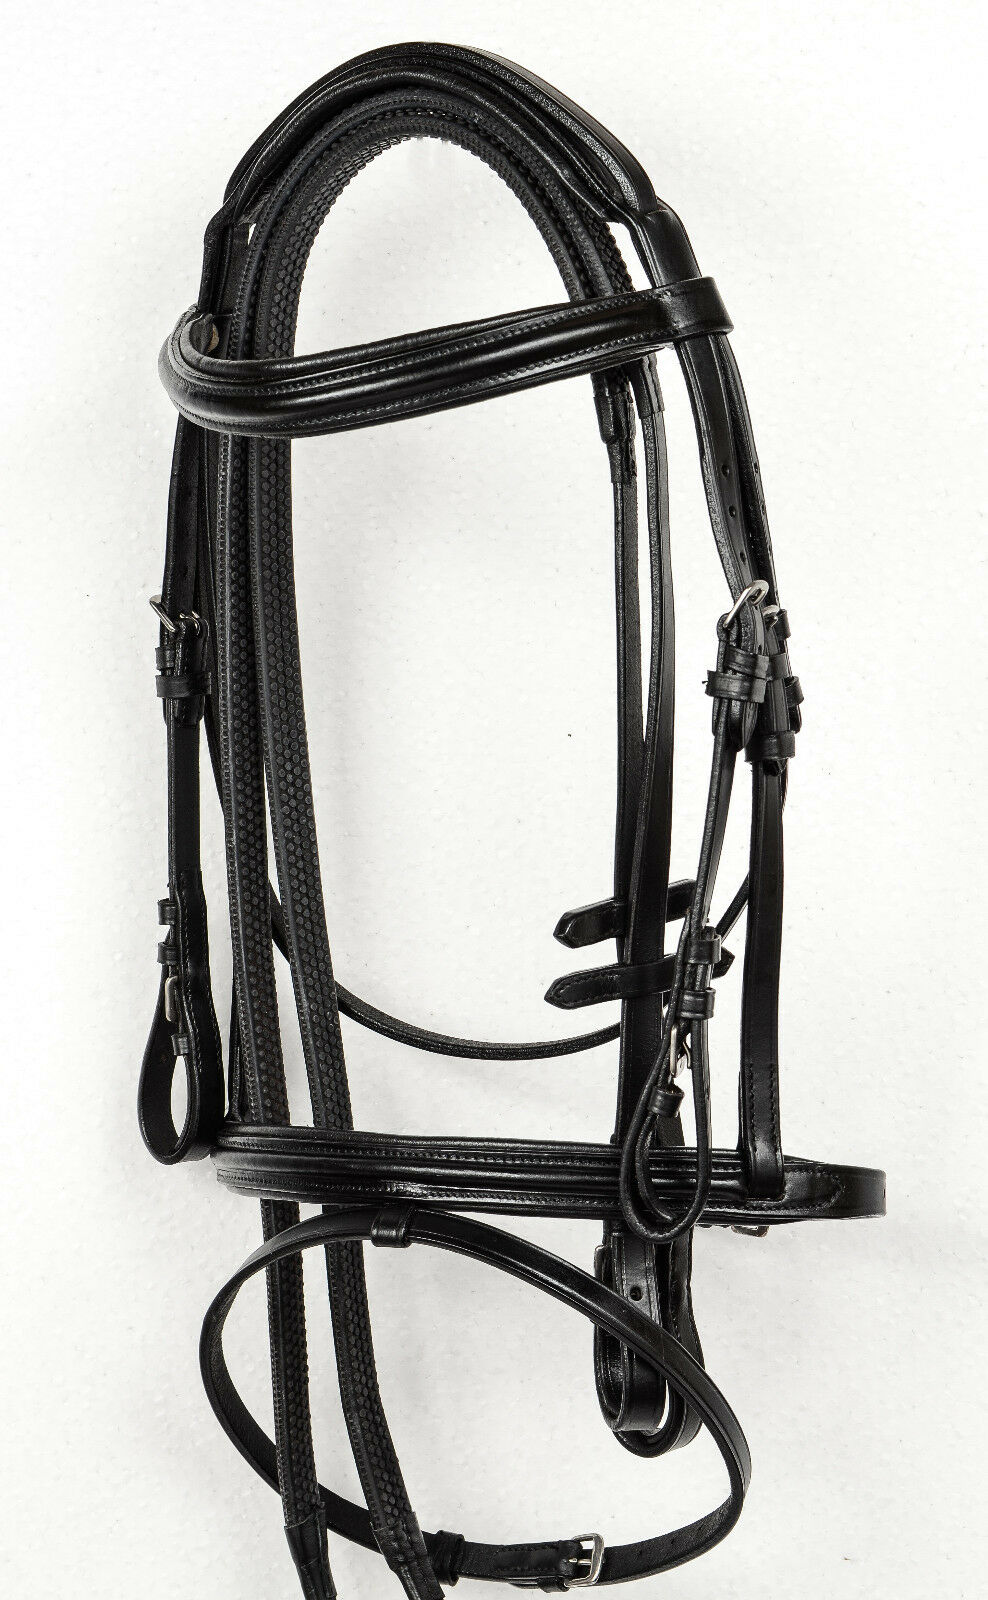 NEW QUALITY PADDED COMFORT LEATHER BRIDLE WITH GRIP REINS. AMAZING VALUE